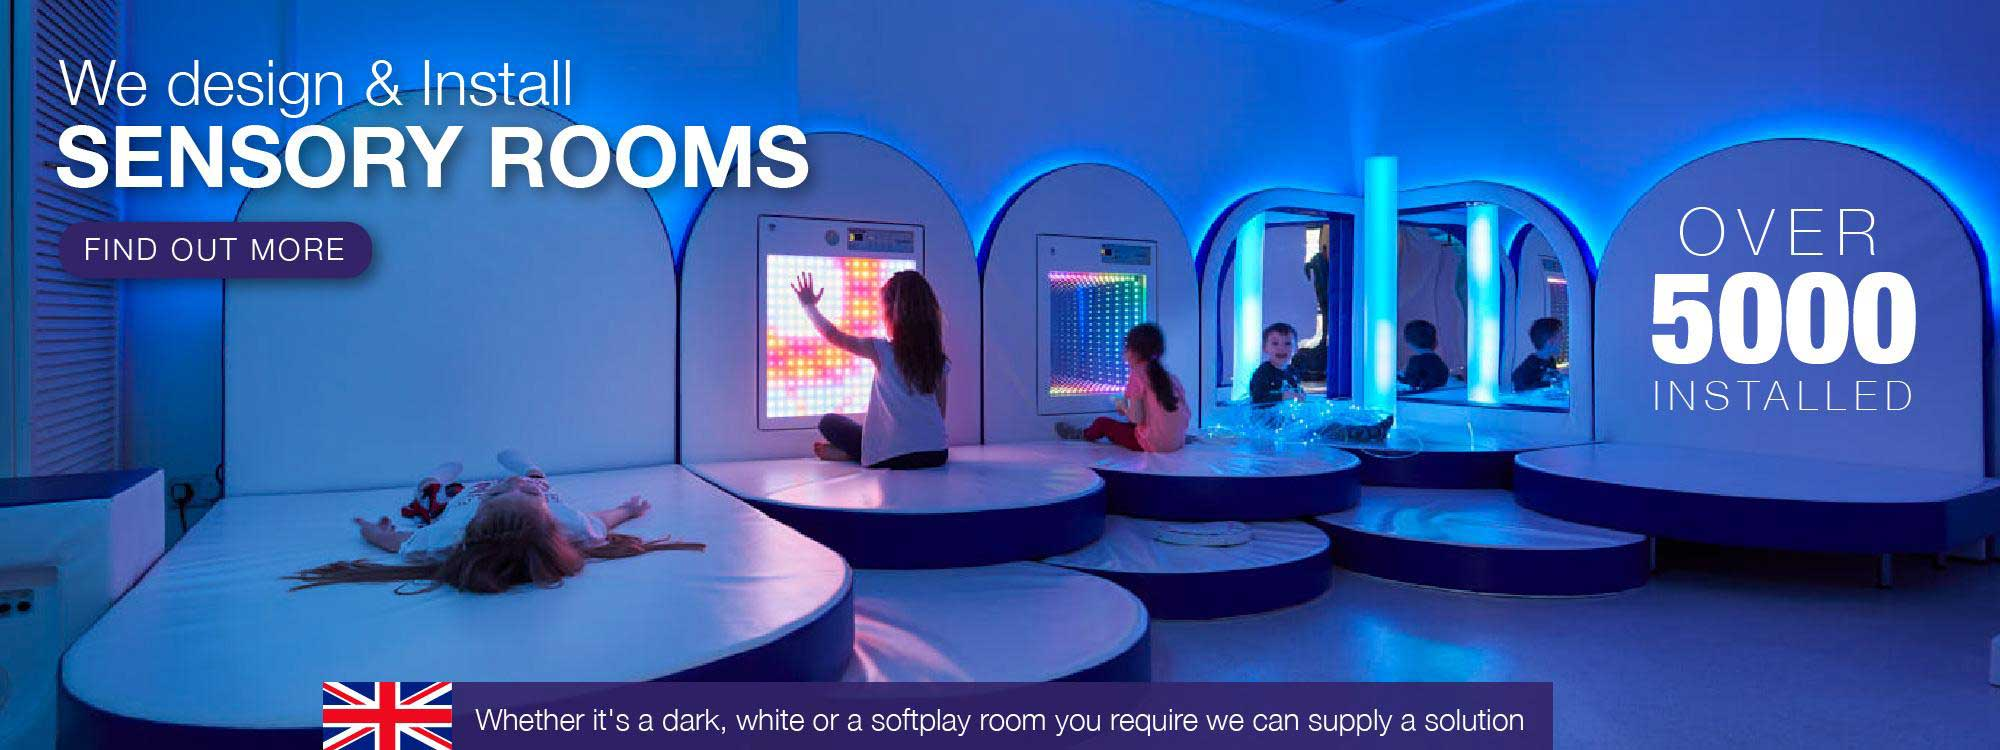 We design and install Sensory Rooms